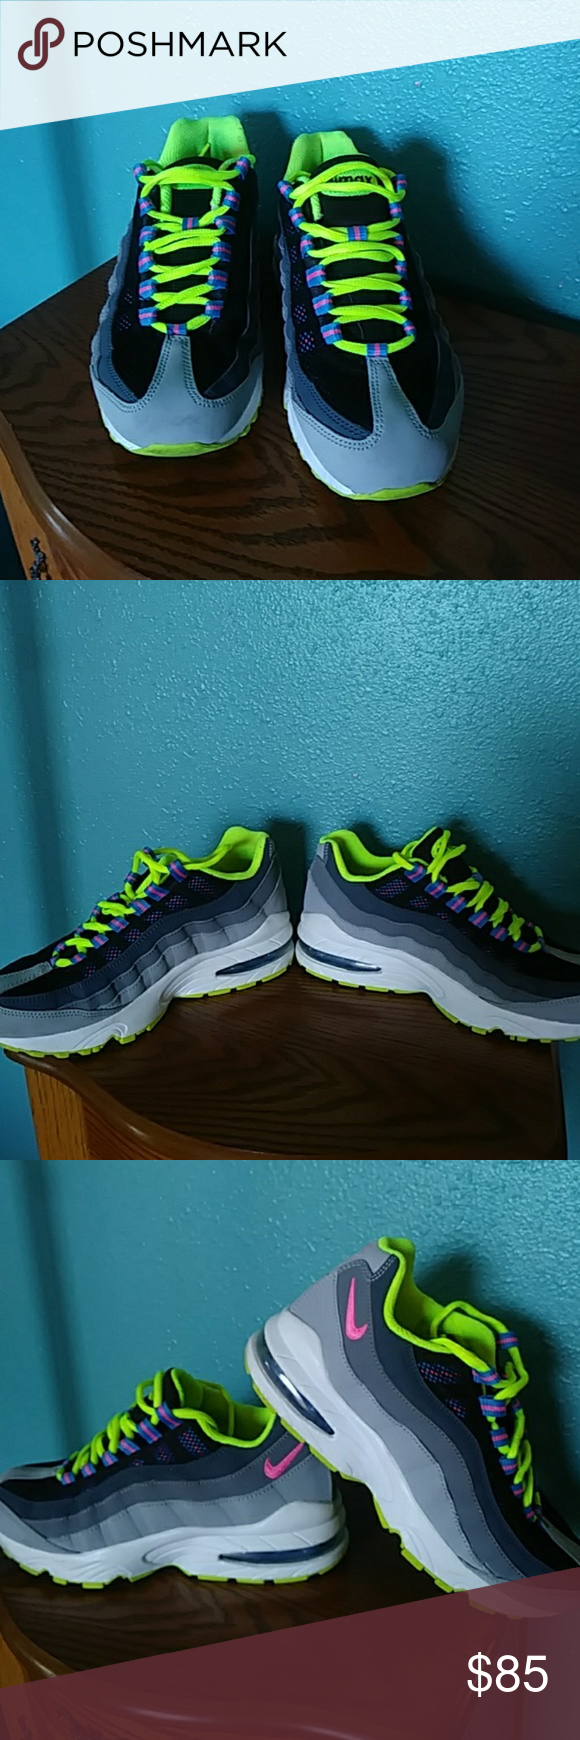 nike air max 95 fit true to size